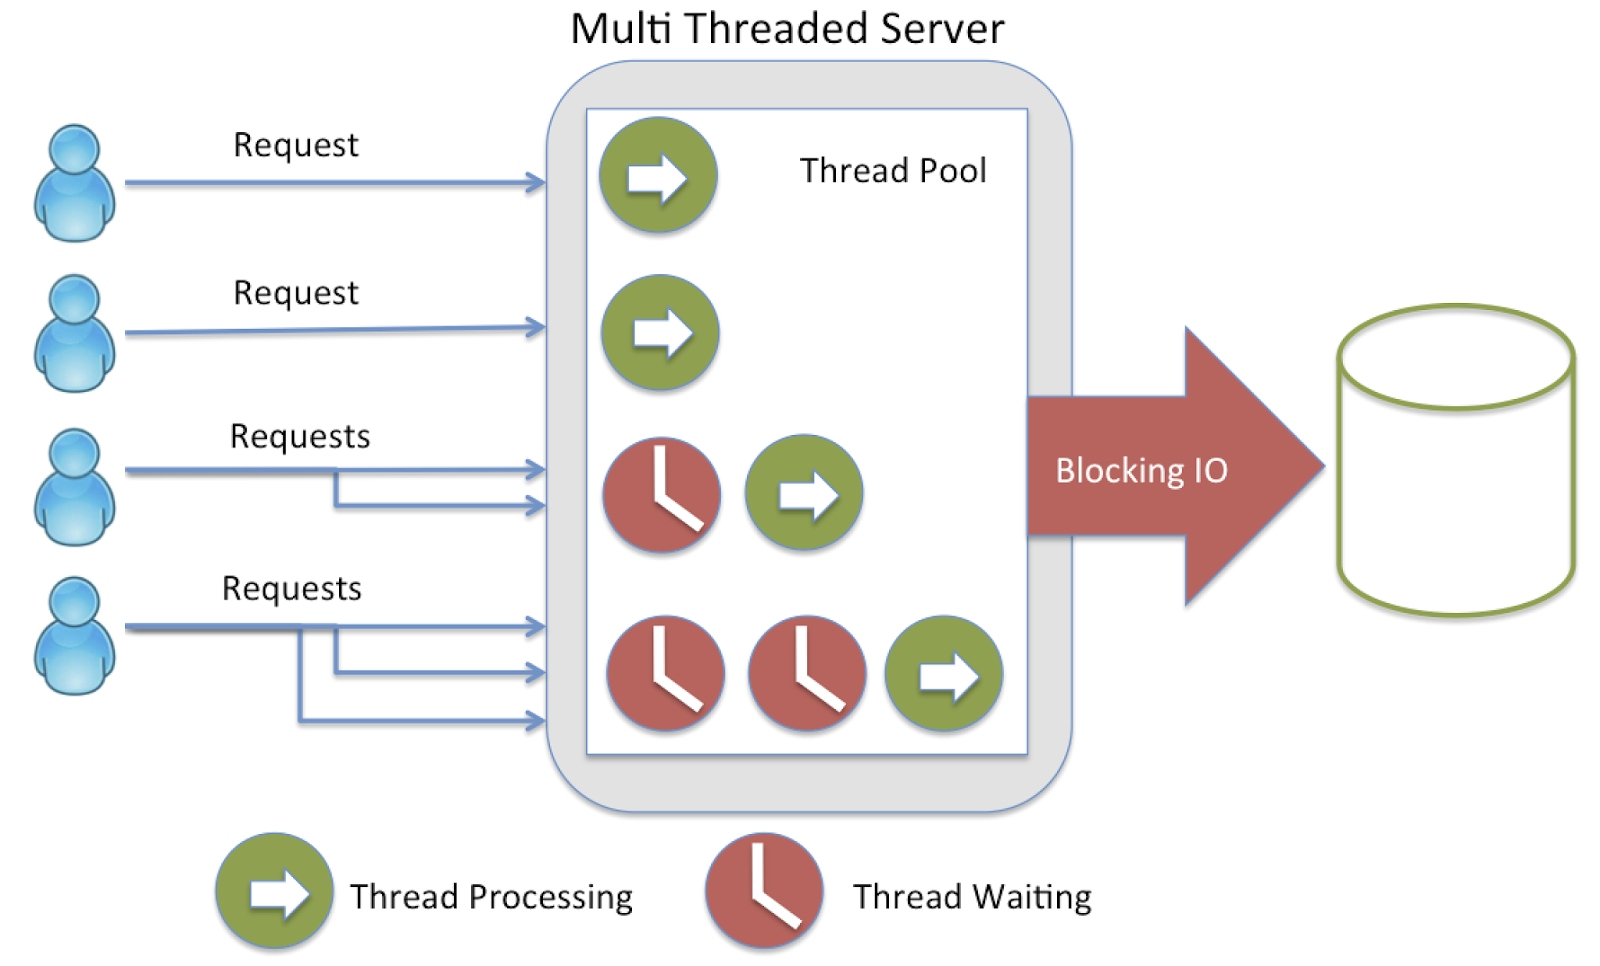 Why we use Threads in Java?